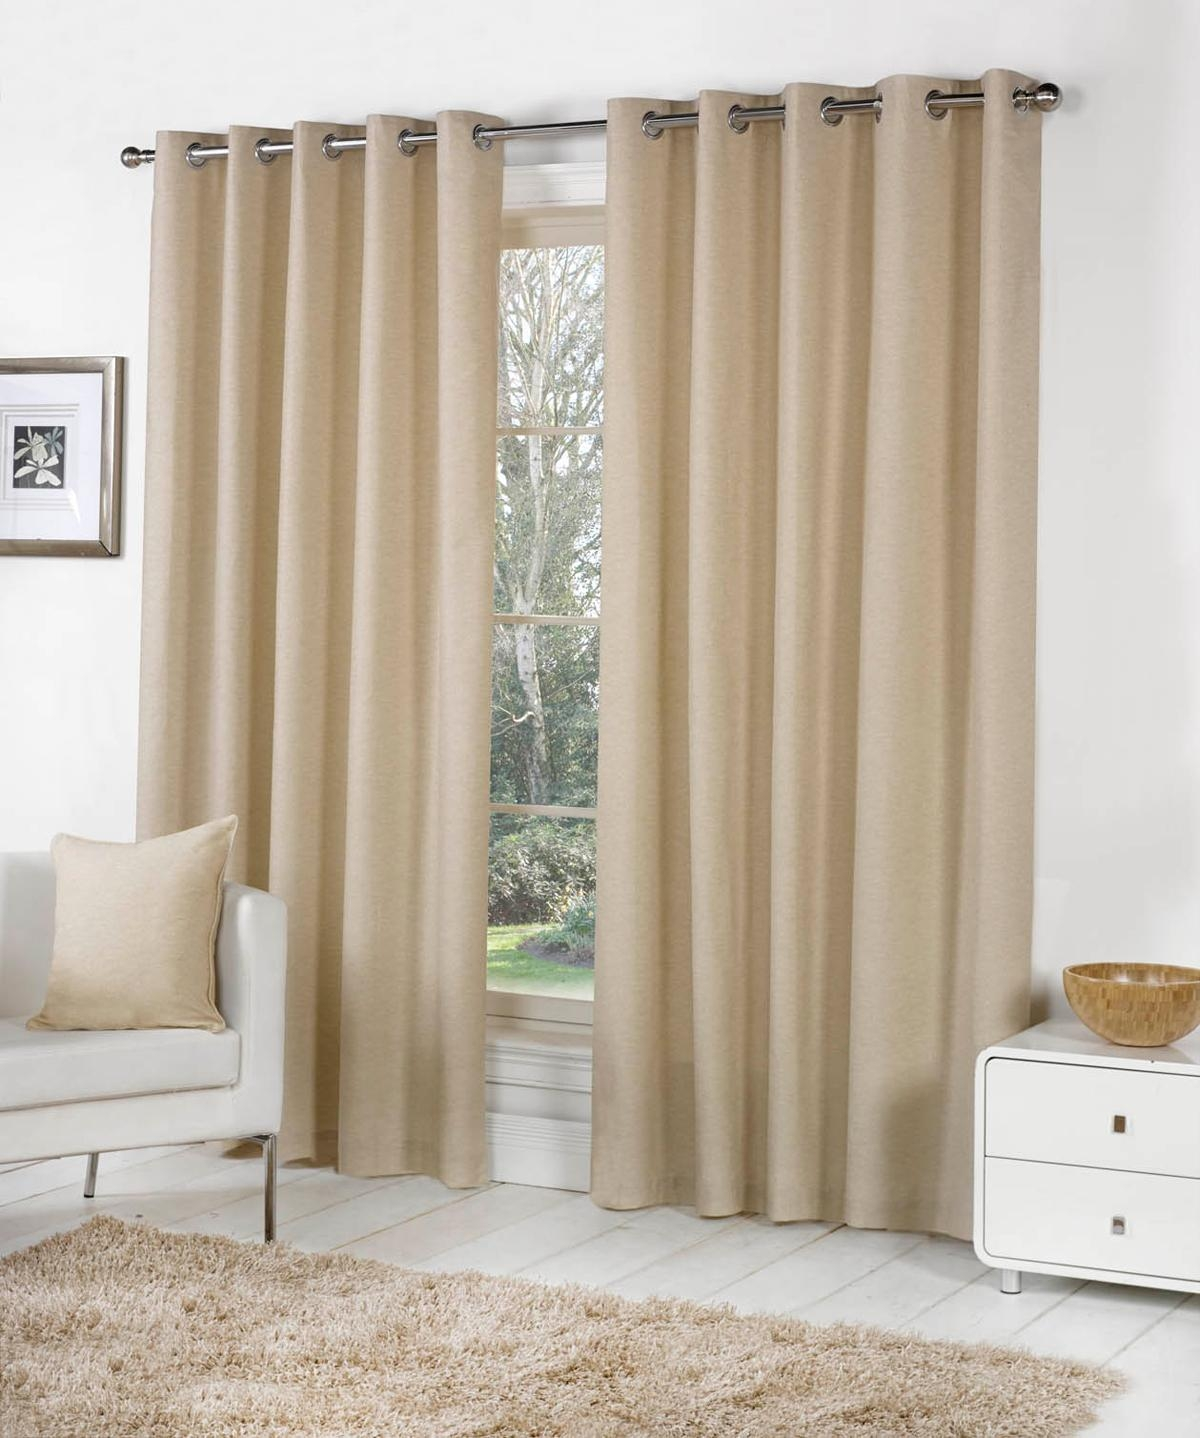 Sorbonne Eyelet Curtains In Natural Free Uk Delivery Terrys Inside Brown Eyelet Curtains (Image 21 of 25)